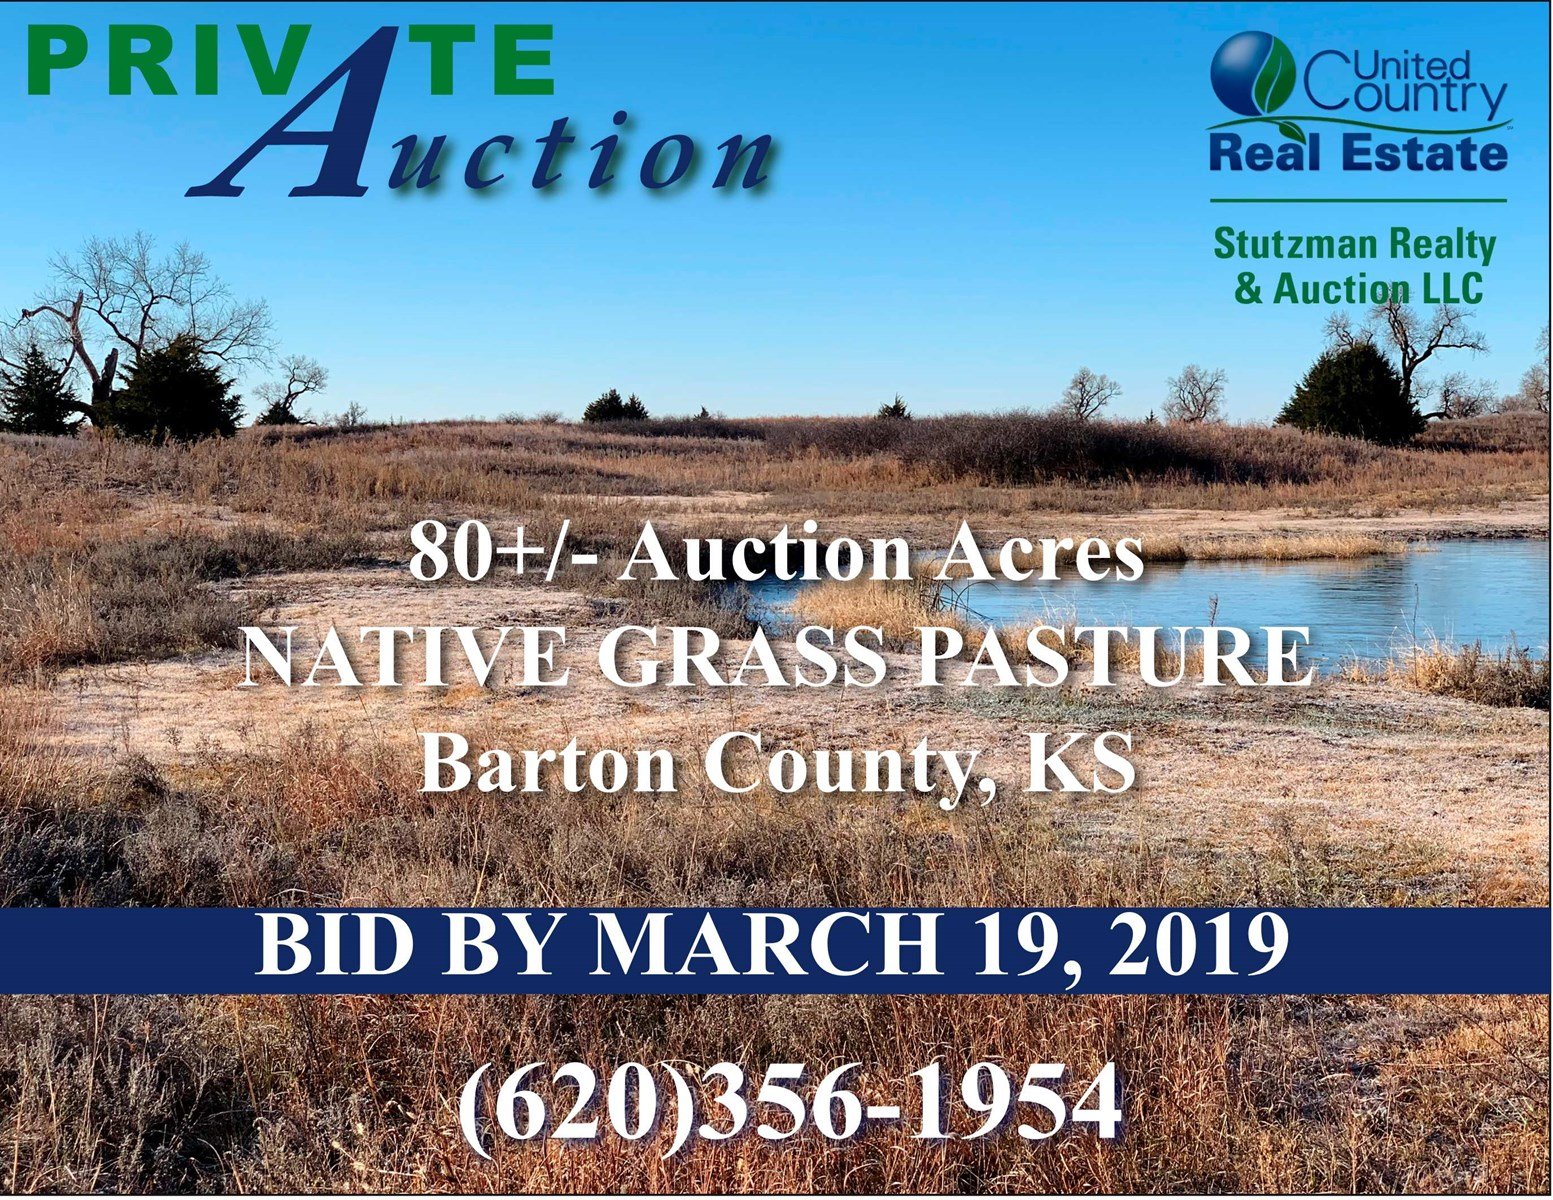 BARTON COUNTY, KS - PRIVATE AUCTION - UNDIVIDED 1/2 INTEREST 80 ACRES SURFACE & MINERAL RIGHTS